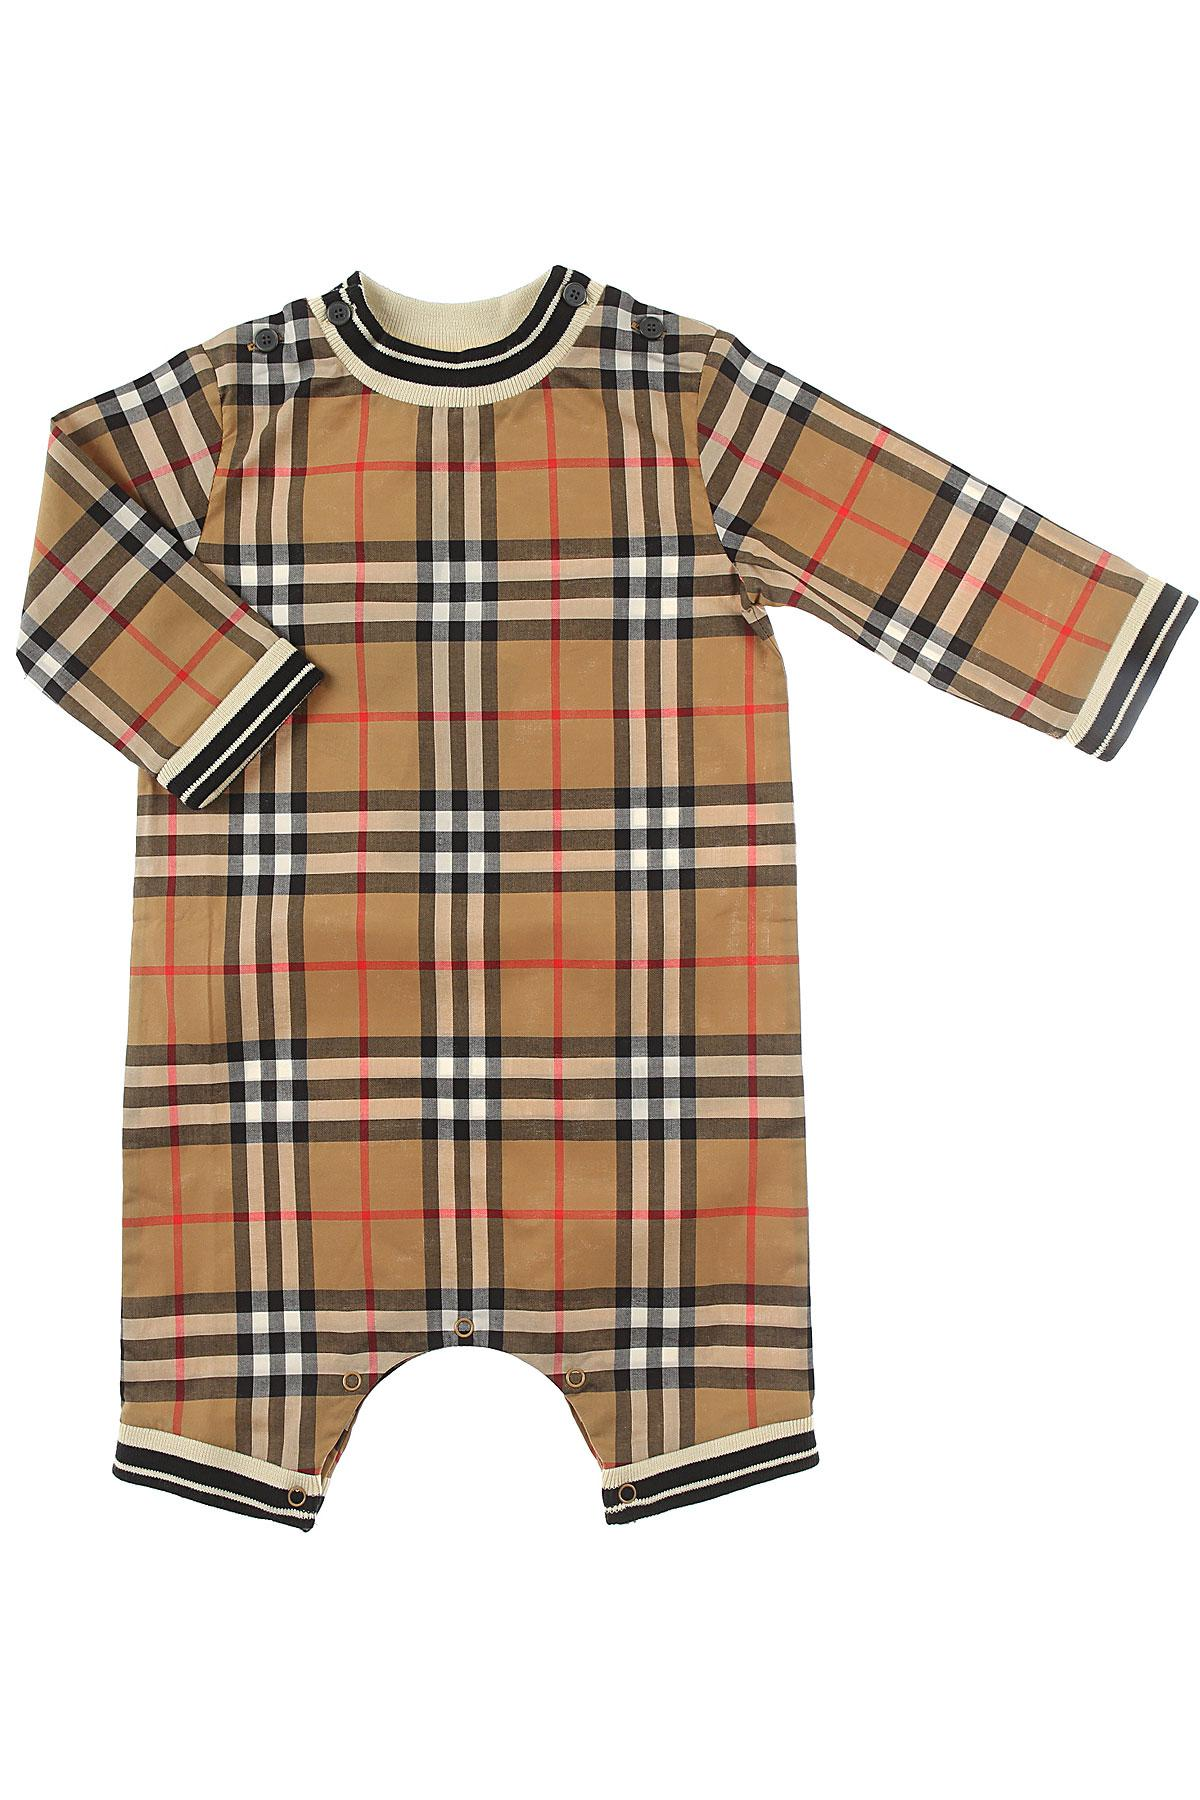 3b4433d4b Burberry Baby Bodysuits & Onesies For Girls On Sale in Brown - Lyst